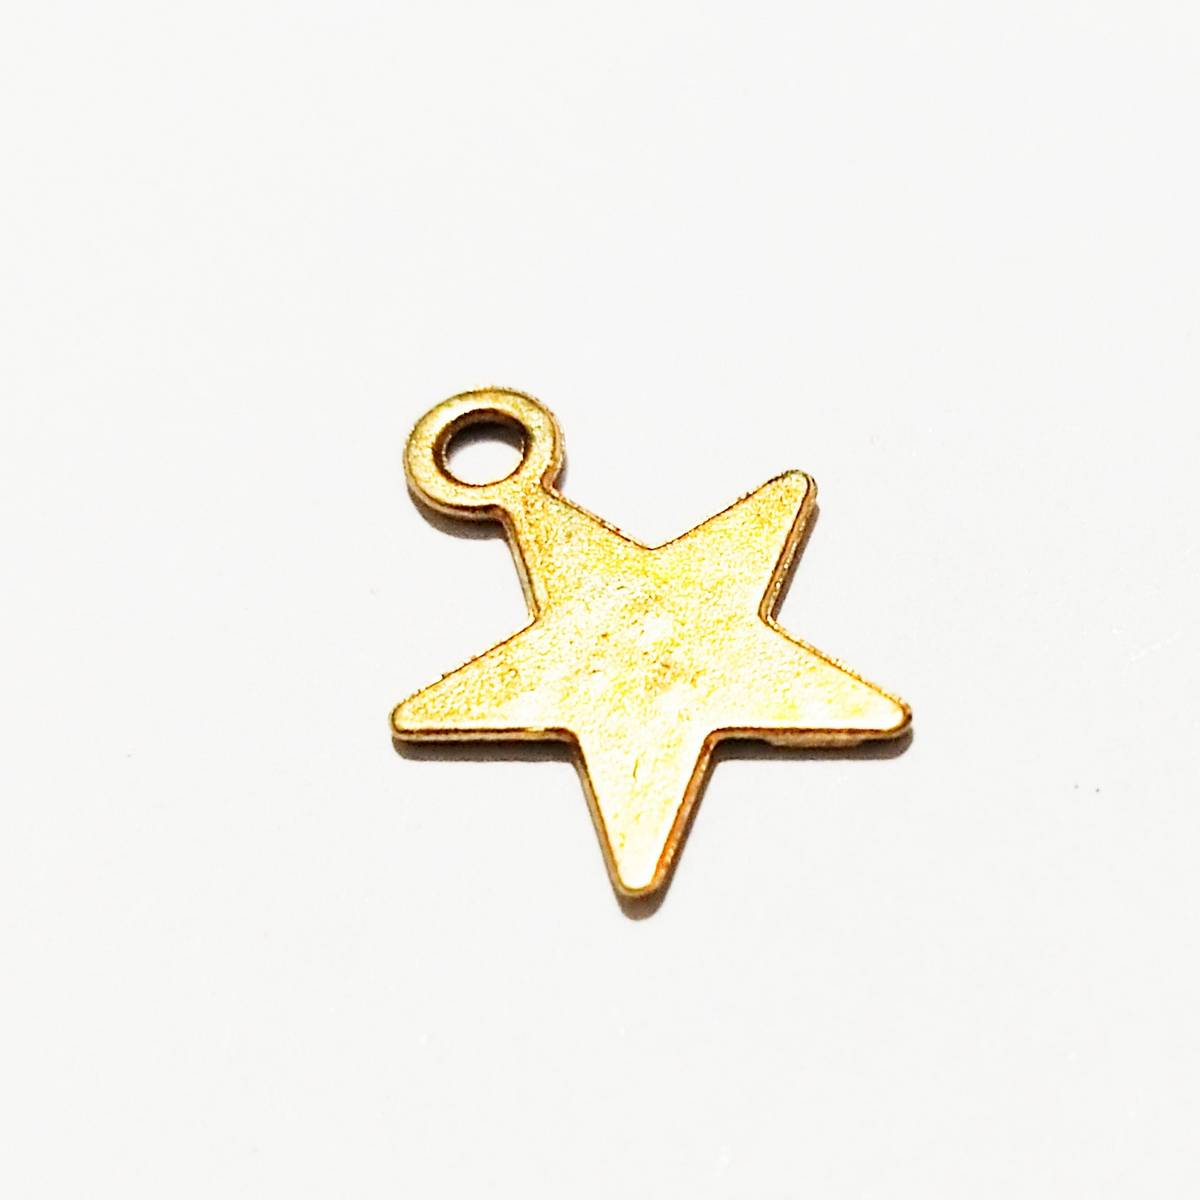 5pcs/lot Charms Star Pendants Jewelry Making DIY Handmade Craft For Bracelet Necklace